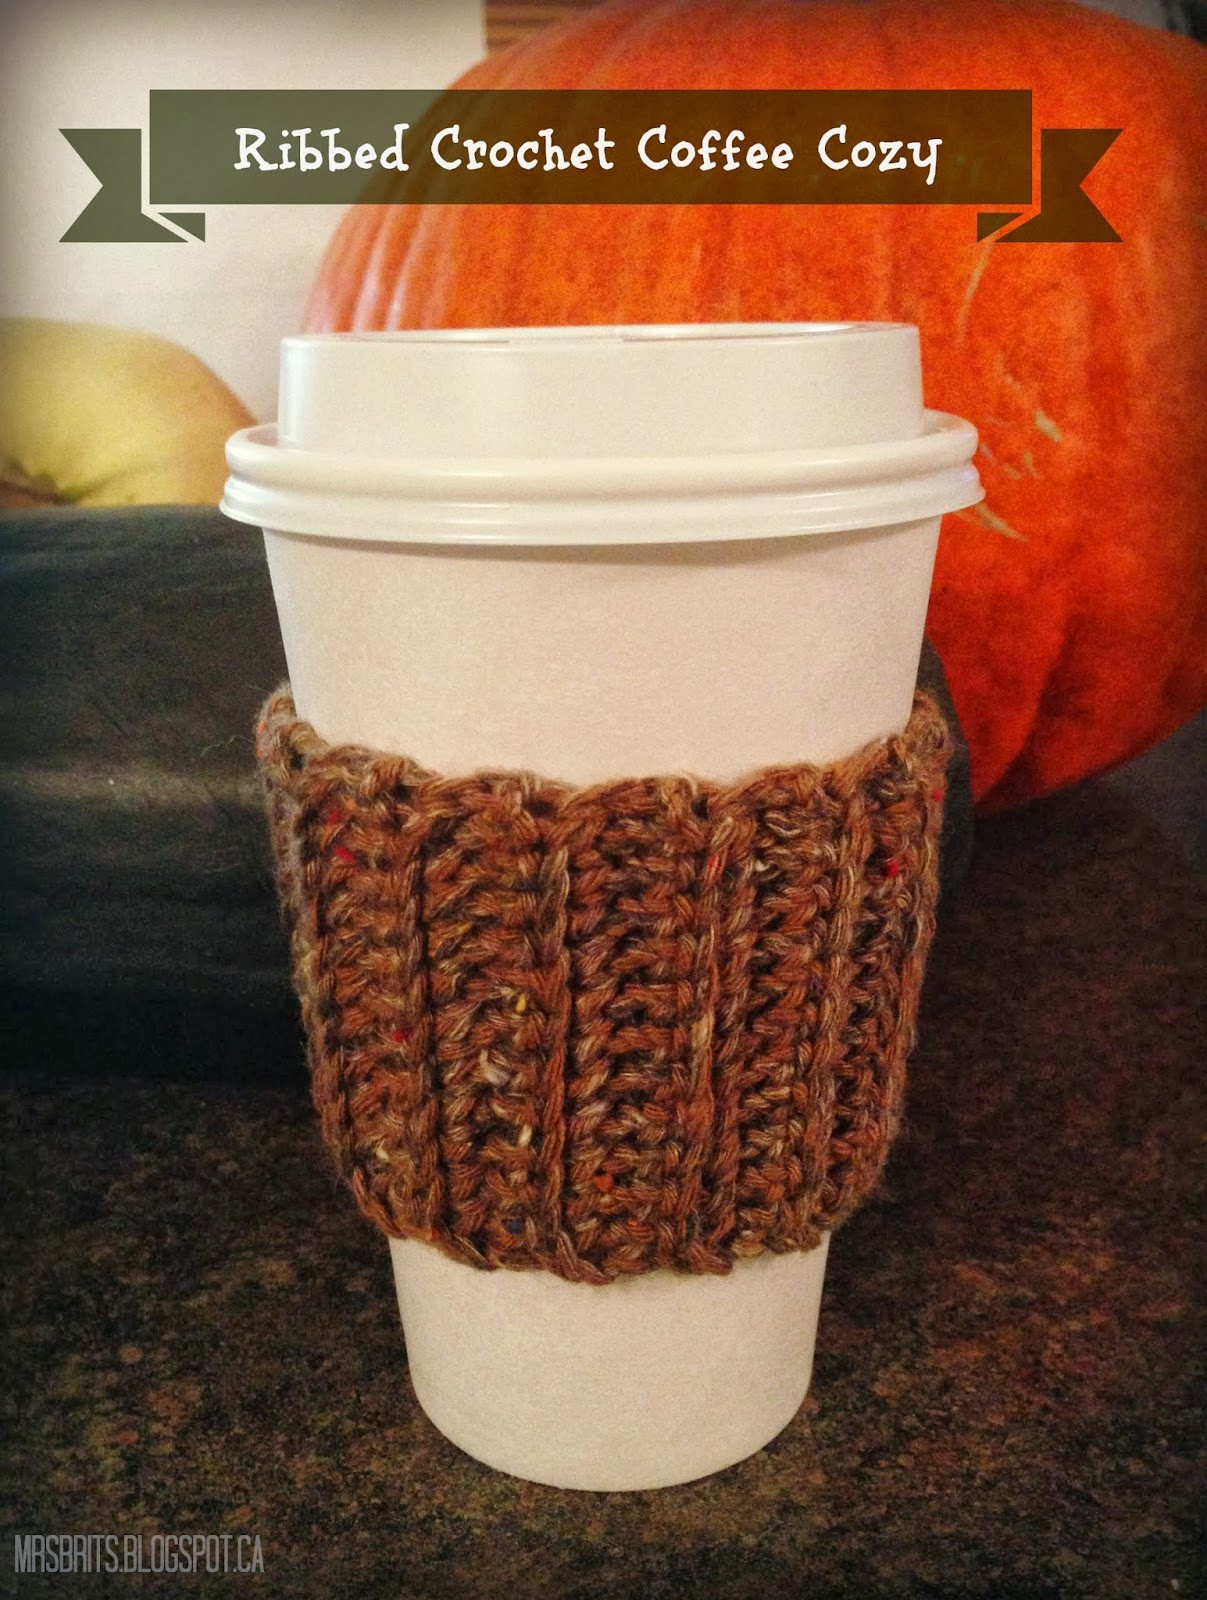 Crochet Coffee Cup Cozy Unique Mrsbrits Ribbed Coffee Cozy Crochet Pattern Of Crochet Coffee Cup Cozy Fresh 20 Cool Crochet Coffee Cozy Ideas & Tutorials Hative